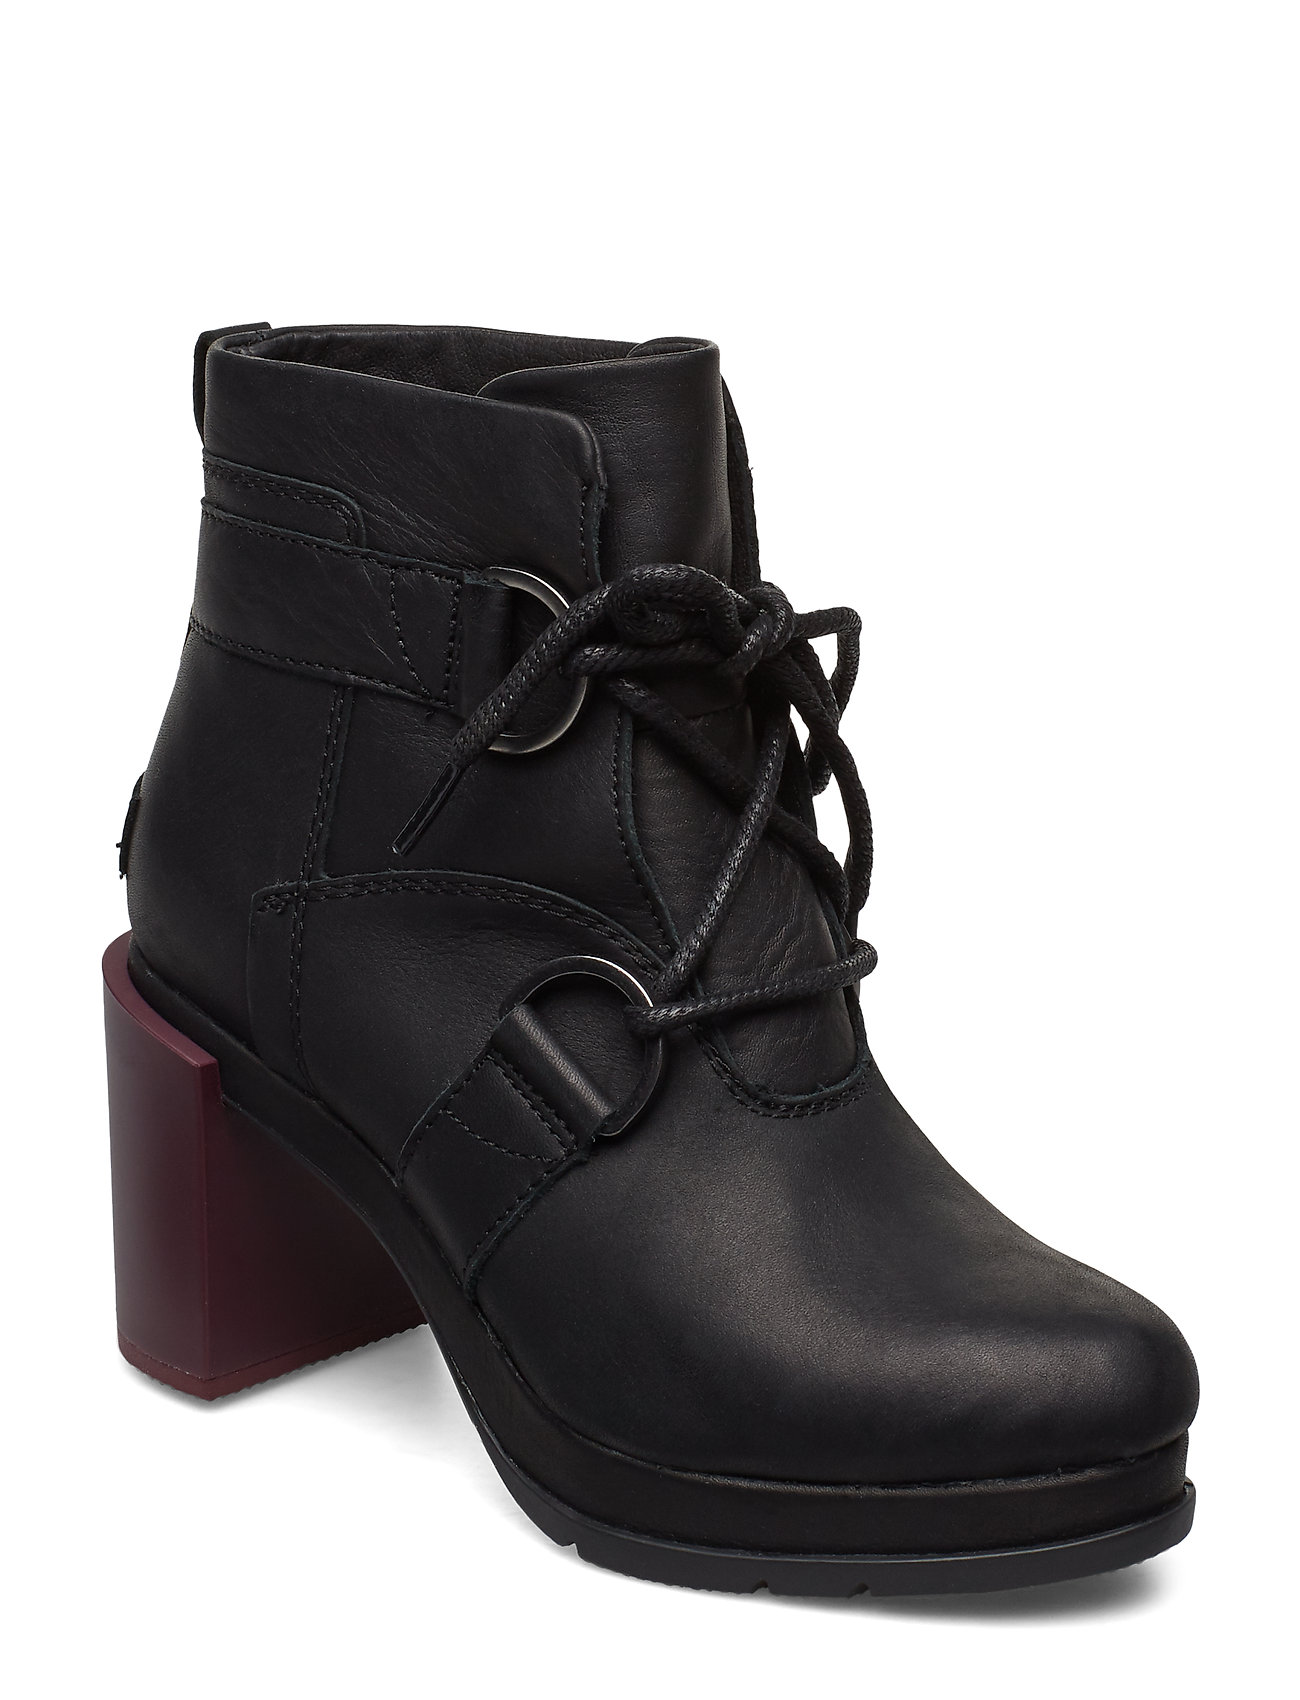 Image of Margo Lace-Up Bootie Shoes Boots Ankle Boots Ankle Boot - Heel Sort Sorel (3217409423)